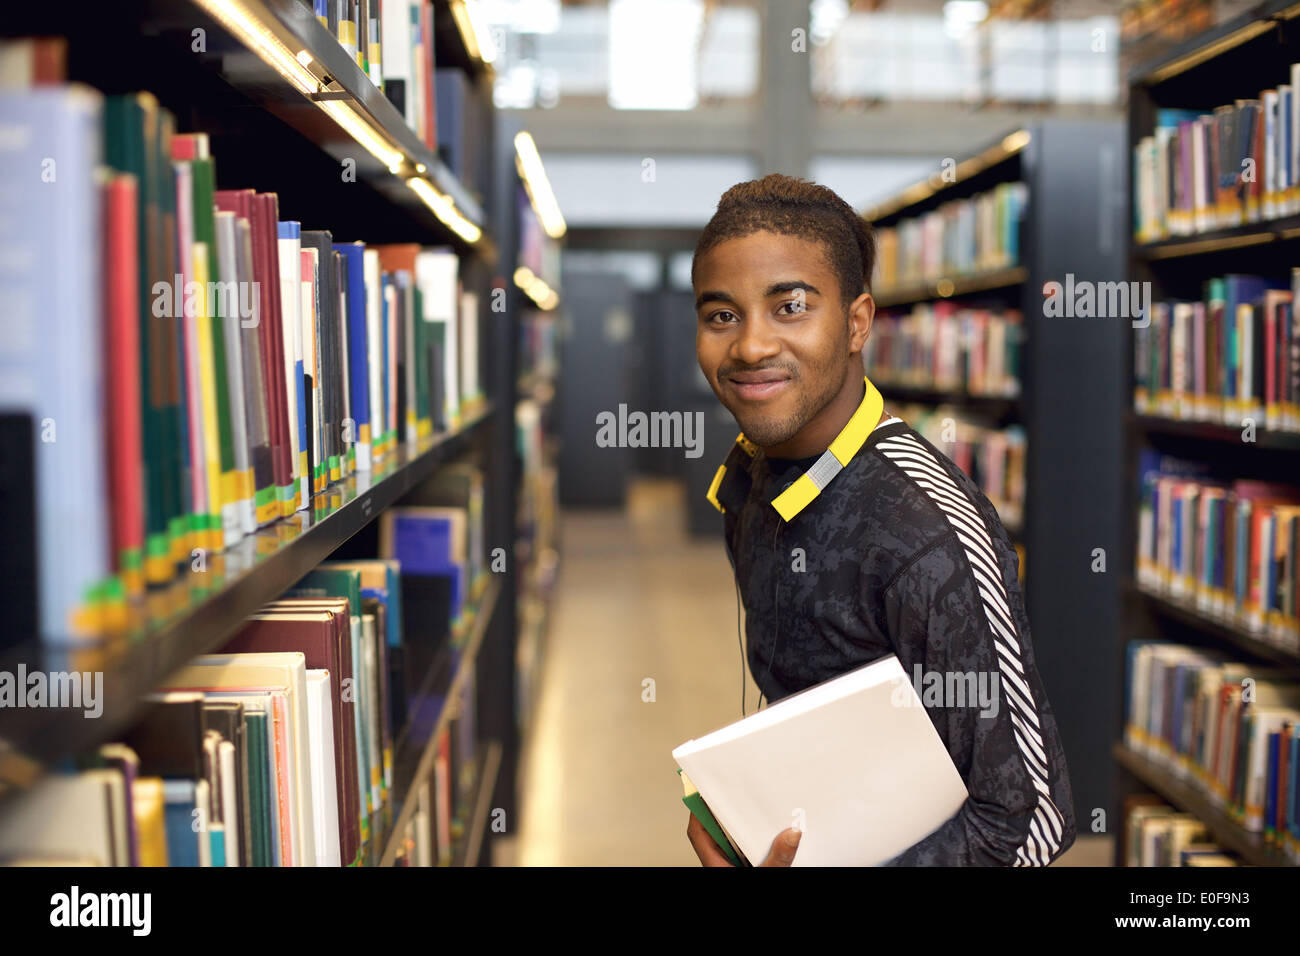 Image of happy young man standing by bookshelf in library. African american student in public library holding books. - Stock Image